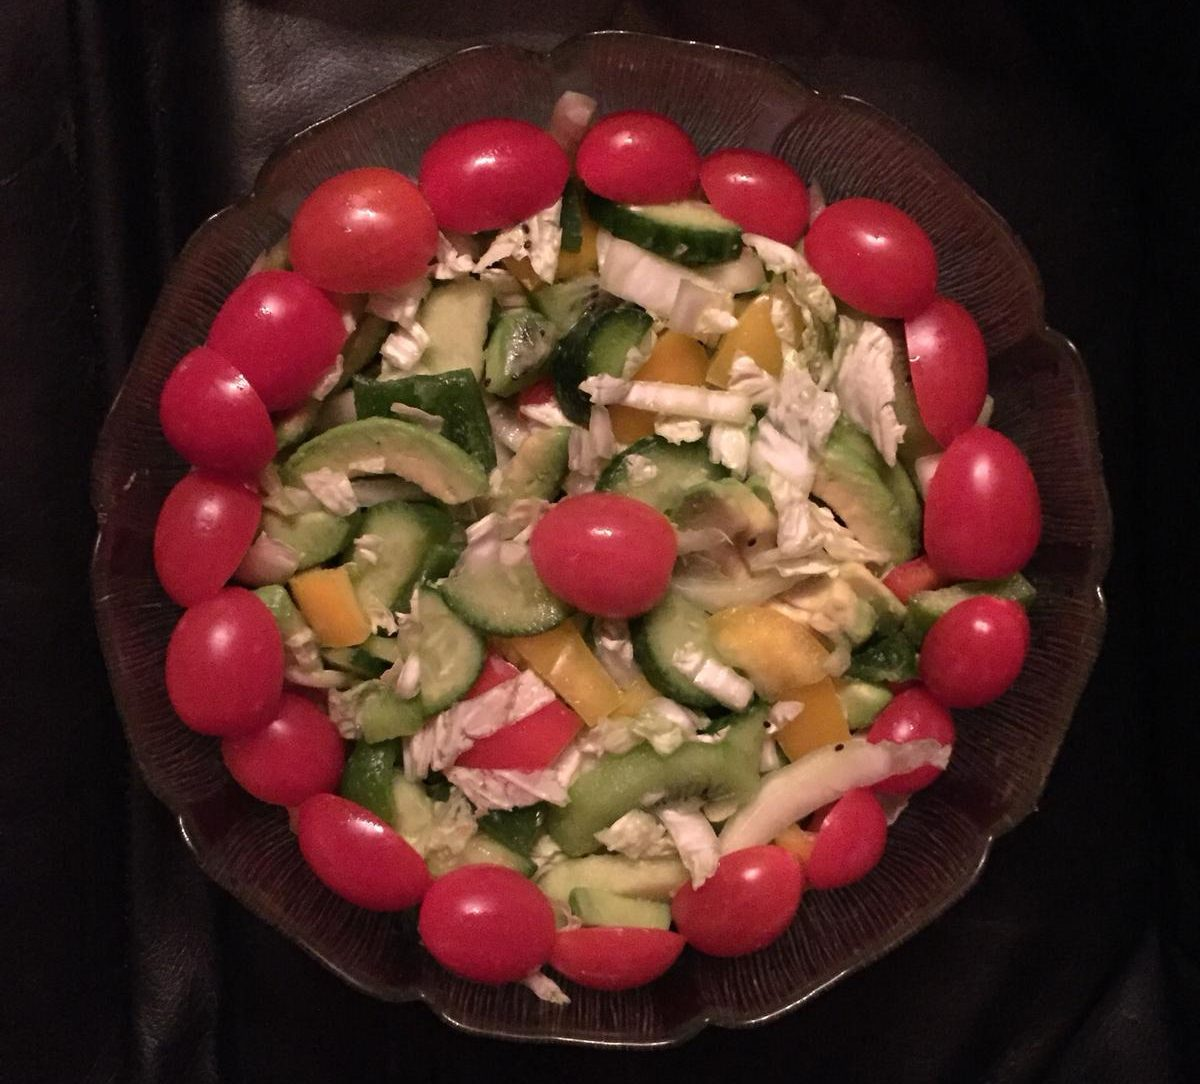 my kitchen/fruite salad